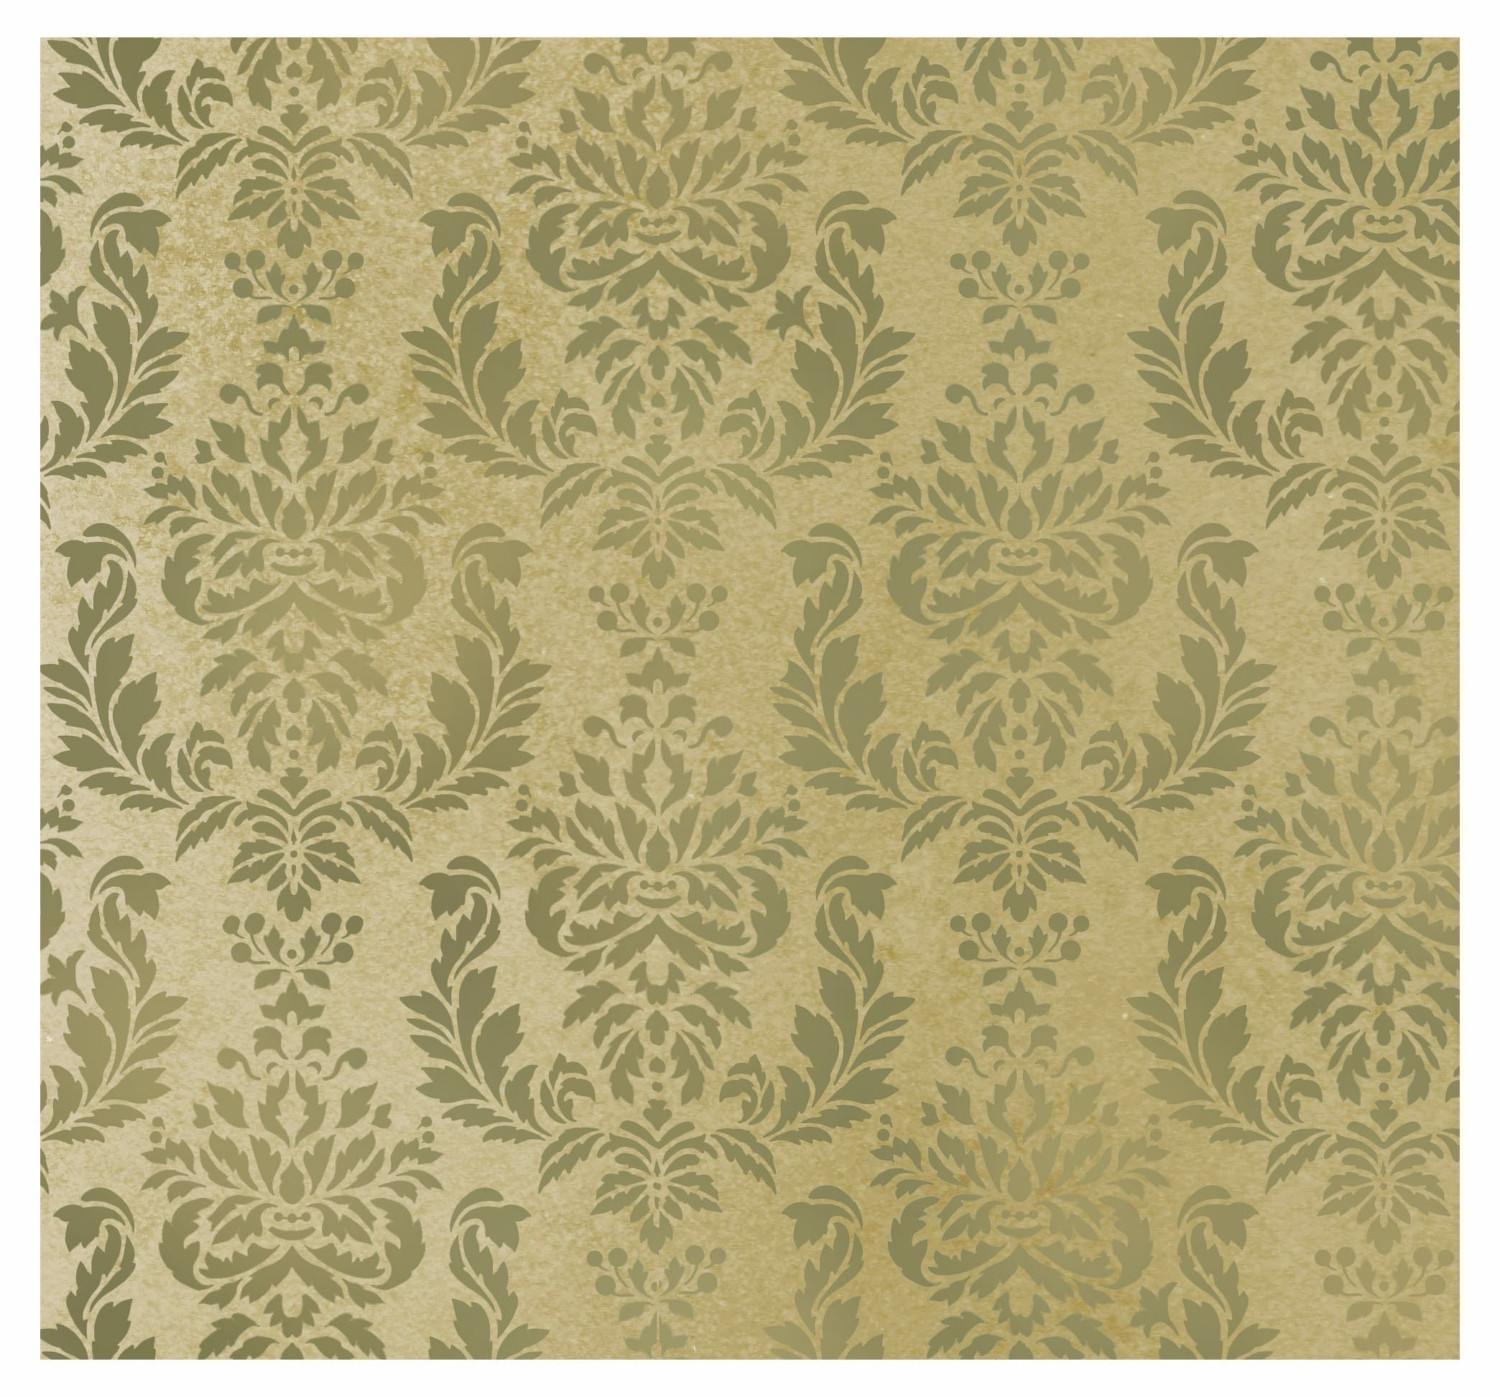 Wall Stencil Damask Verde 24x30 Brocade by CuttingEdgeStencils 1500x1397